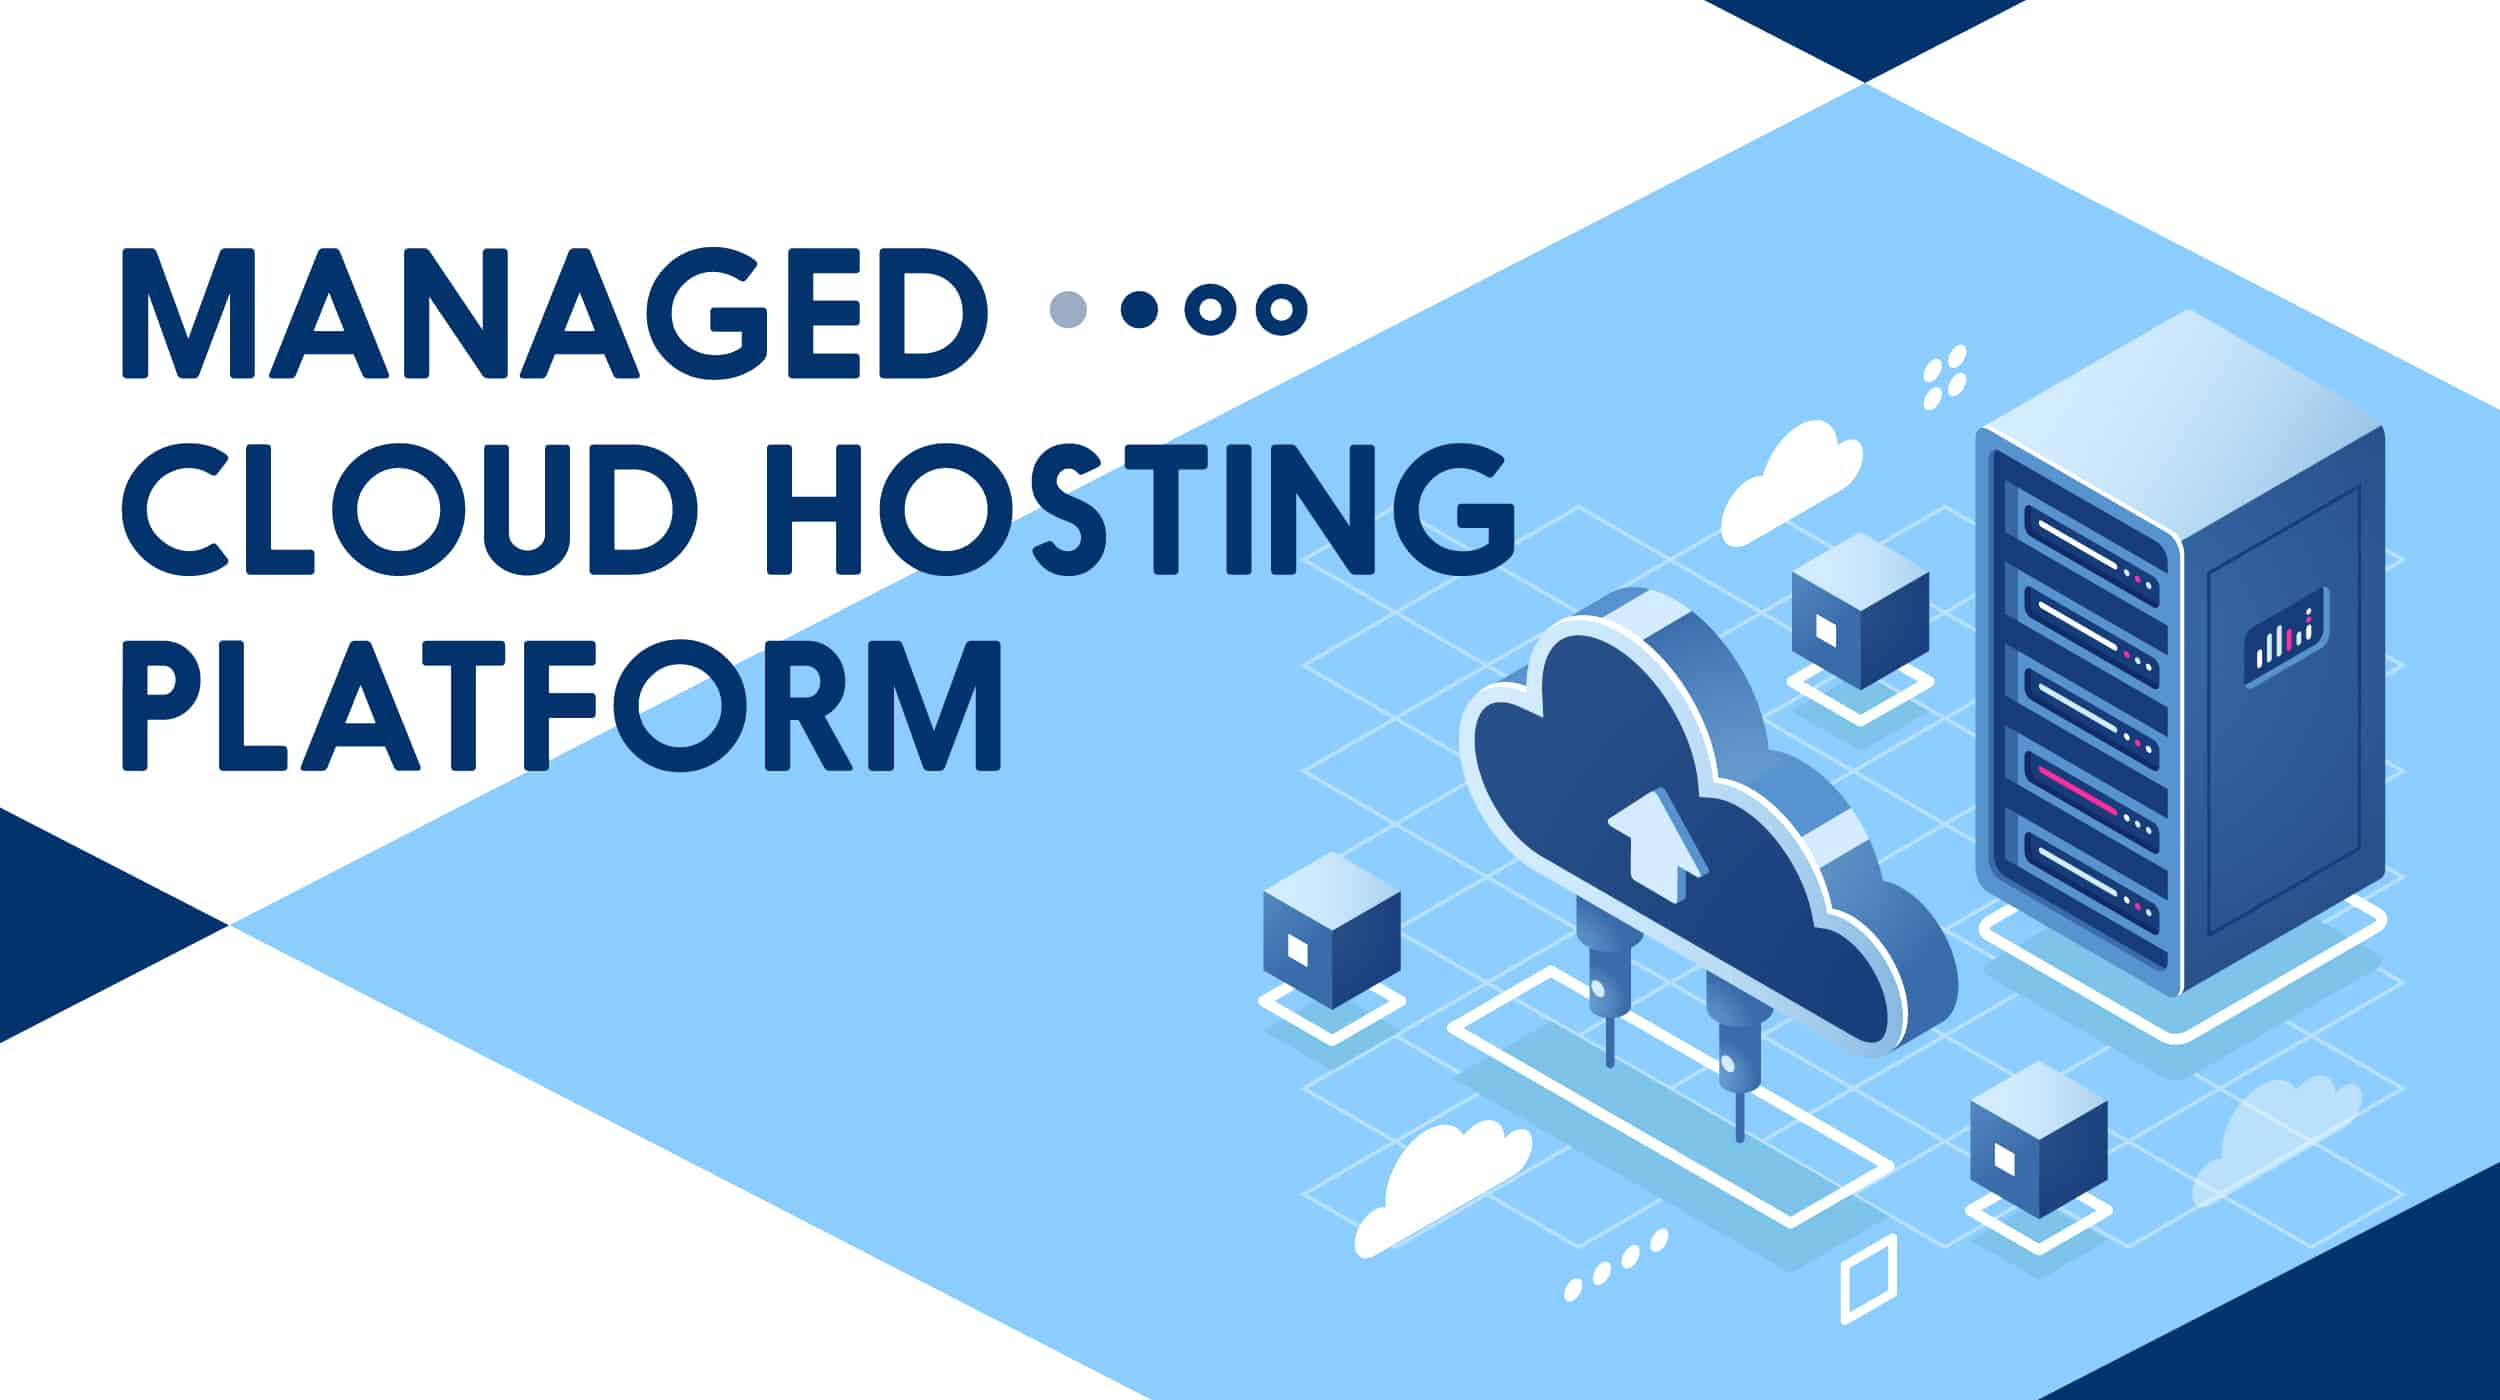 managed cloud hosting platform